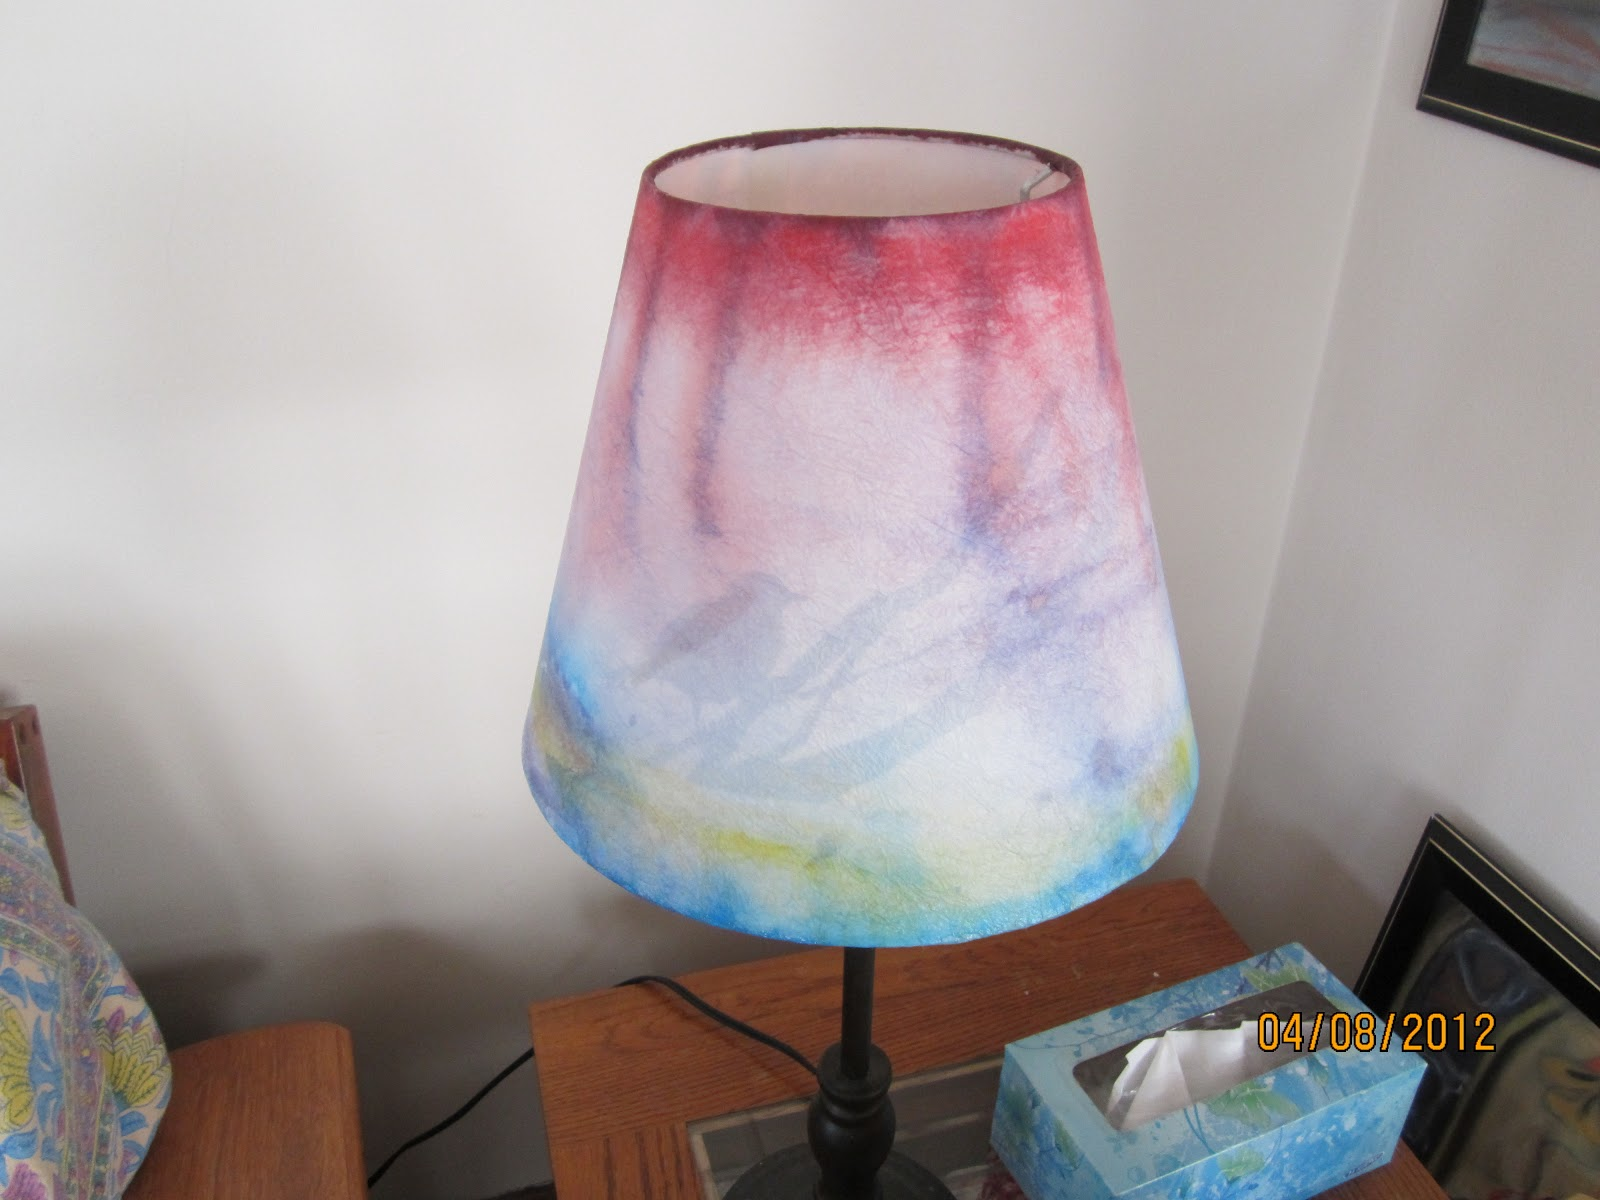 Homemade and Colorful: Water Colored Lamp Shades